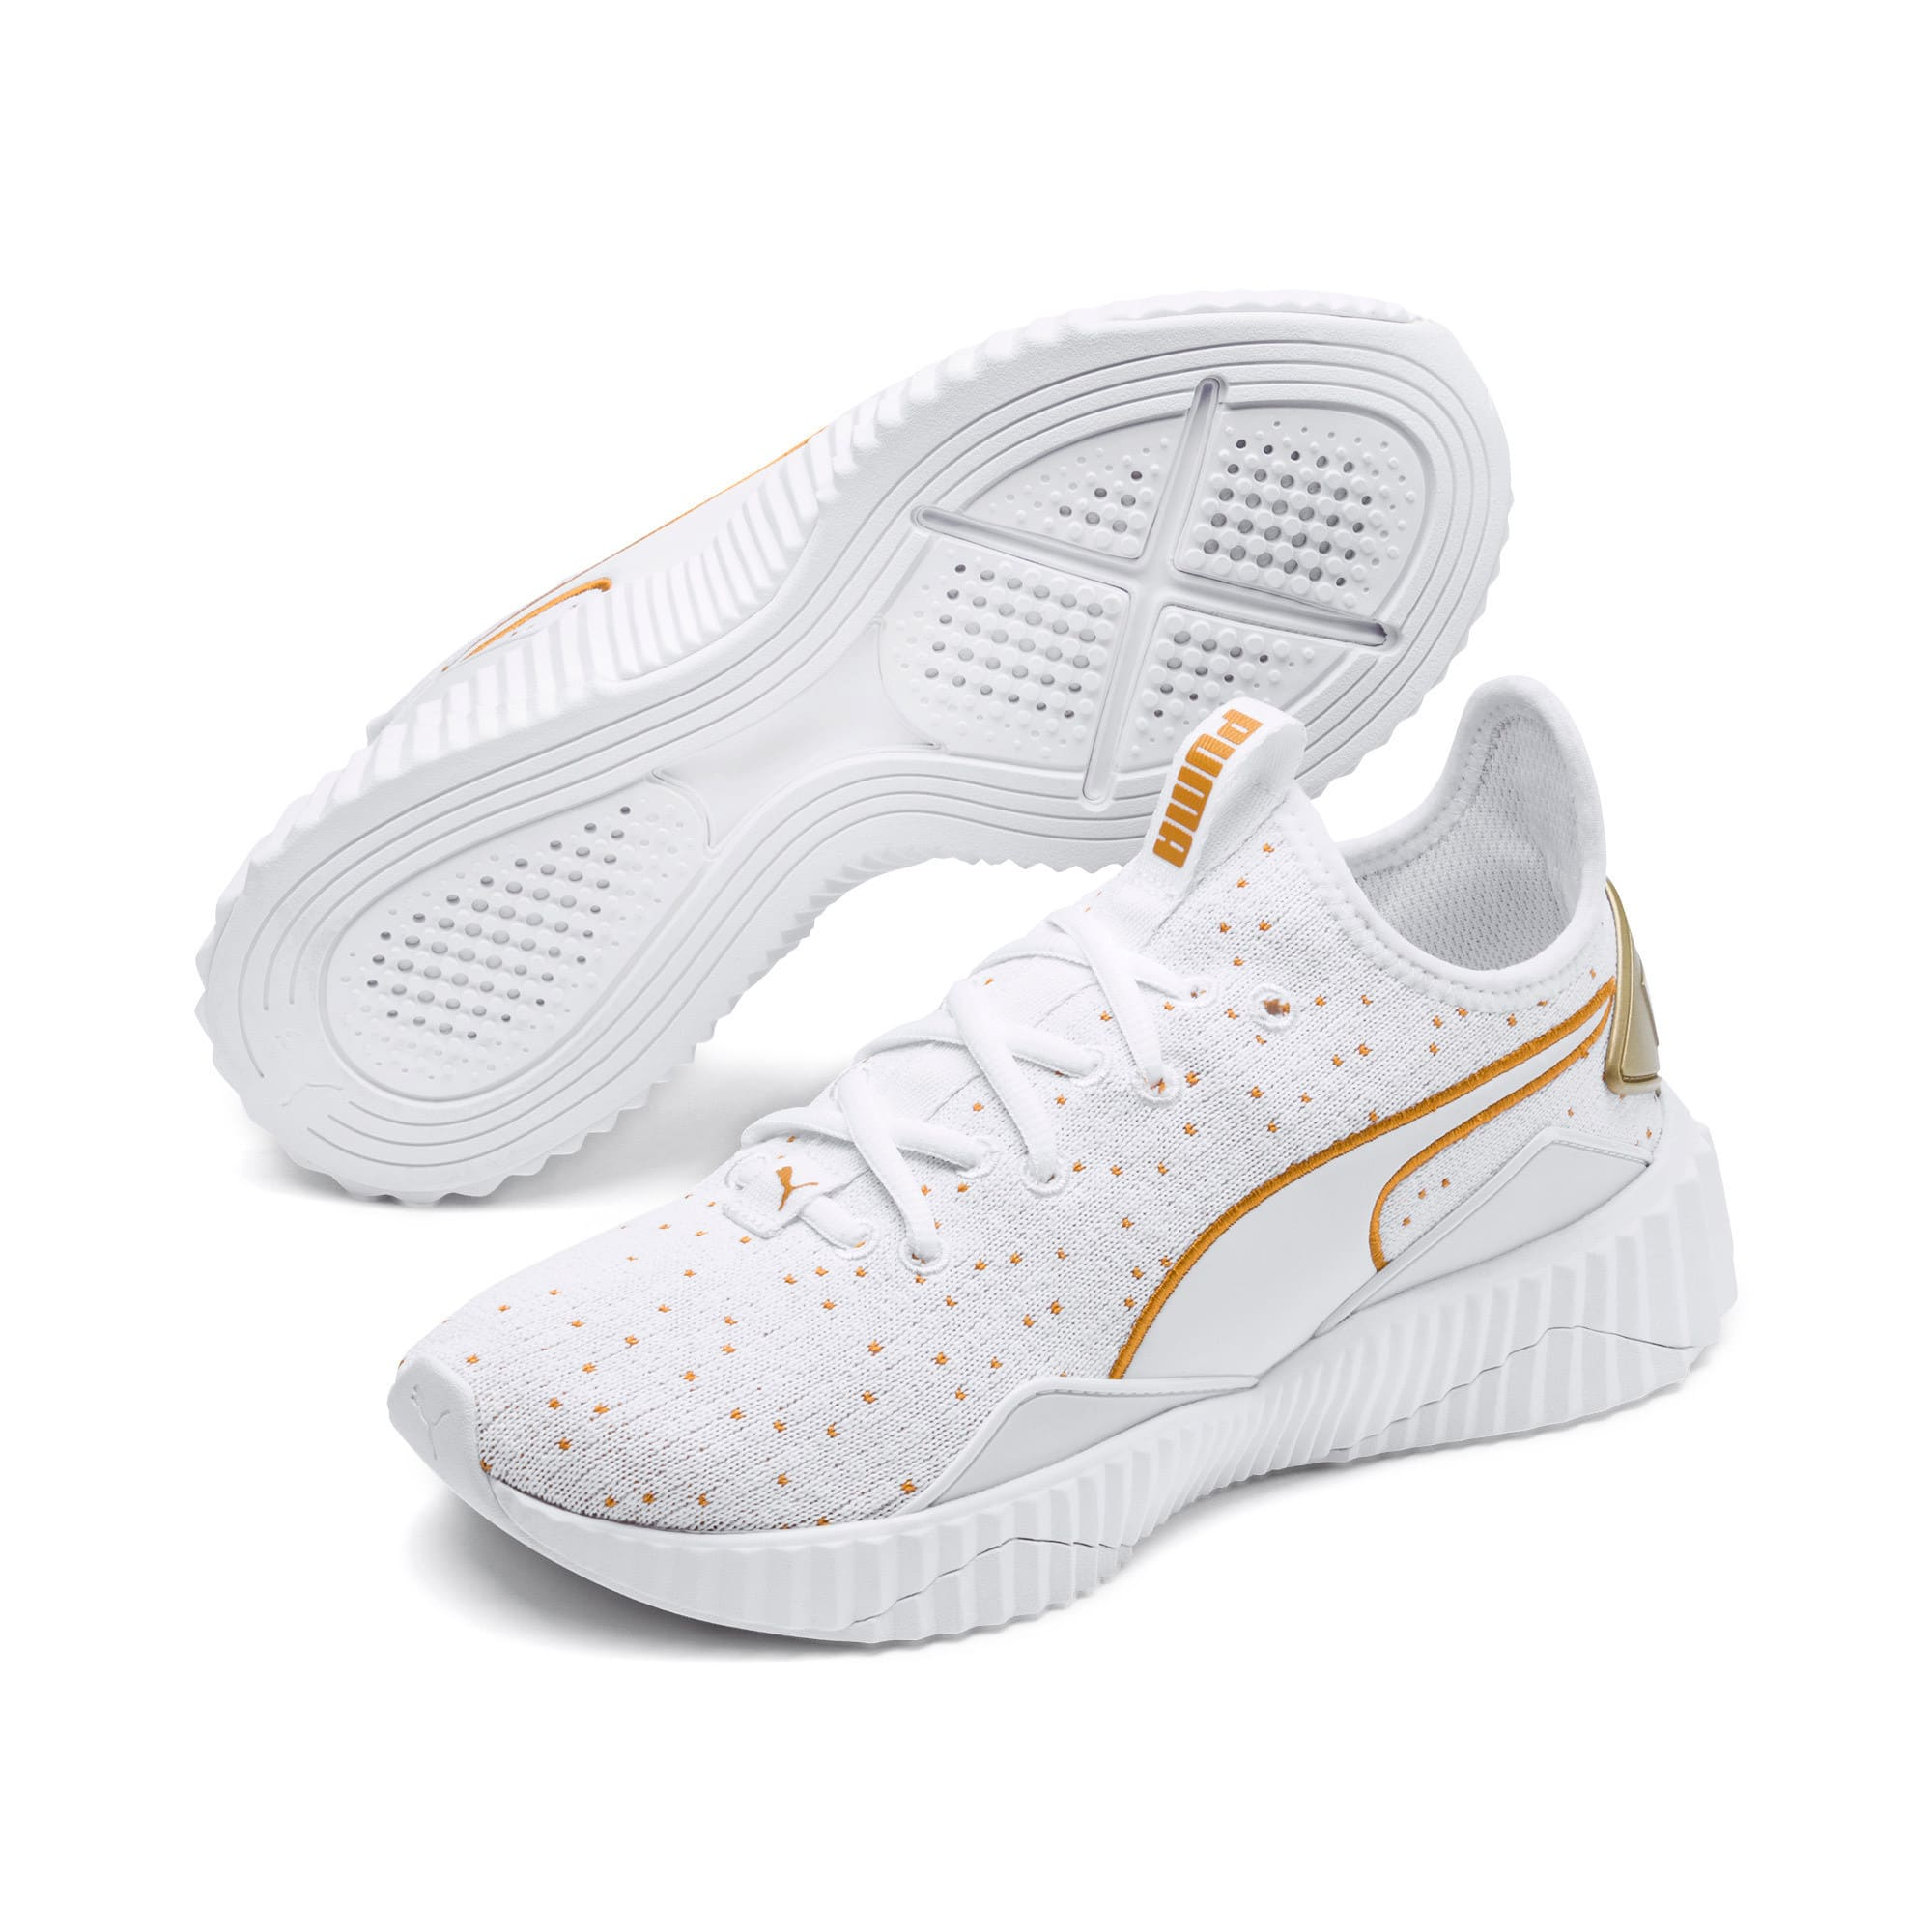 Thumbnail 2 of Defy Speckle Women's Training Shoes, Puma White-Gold, medium